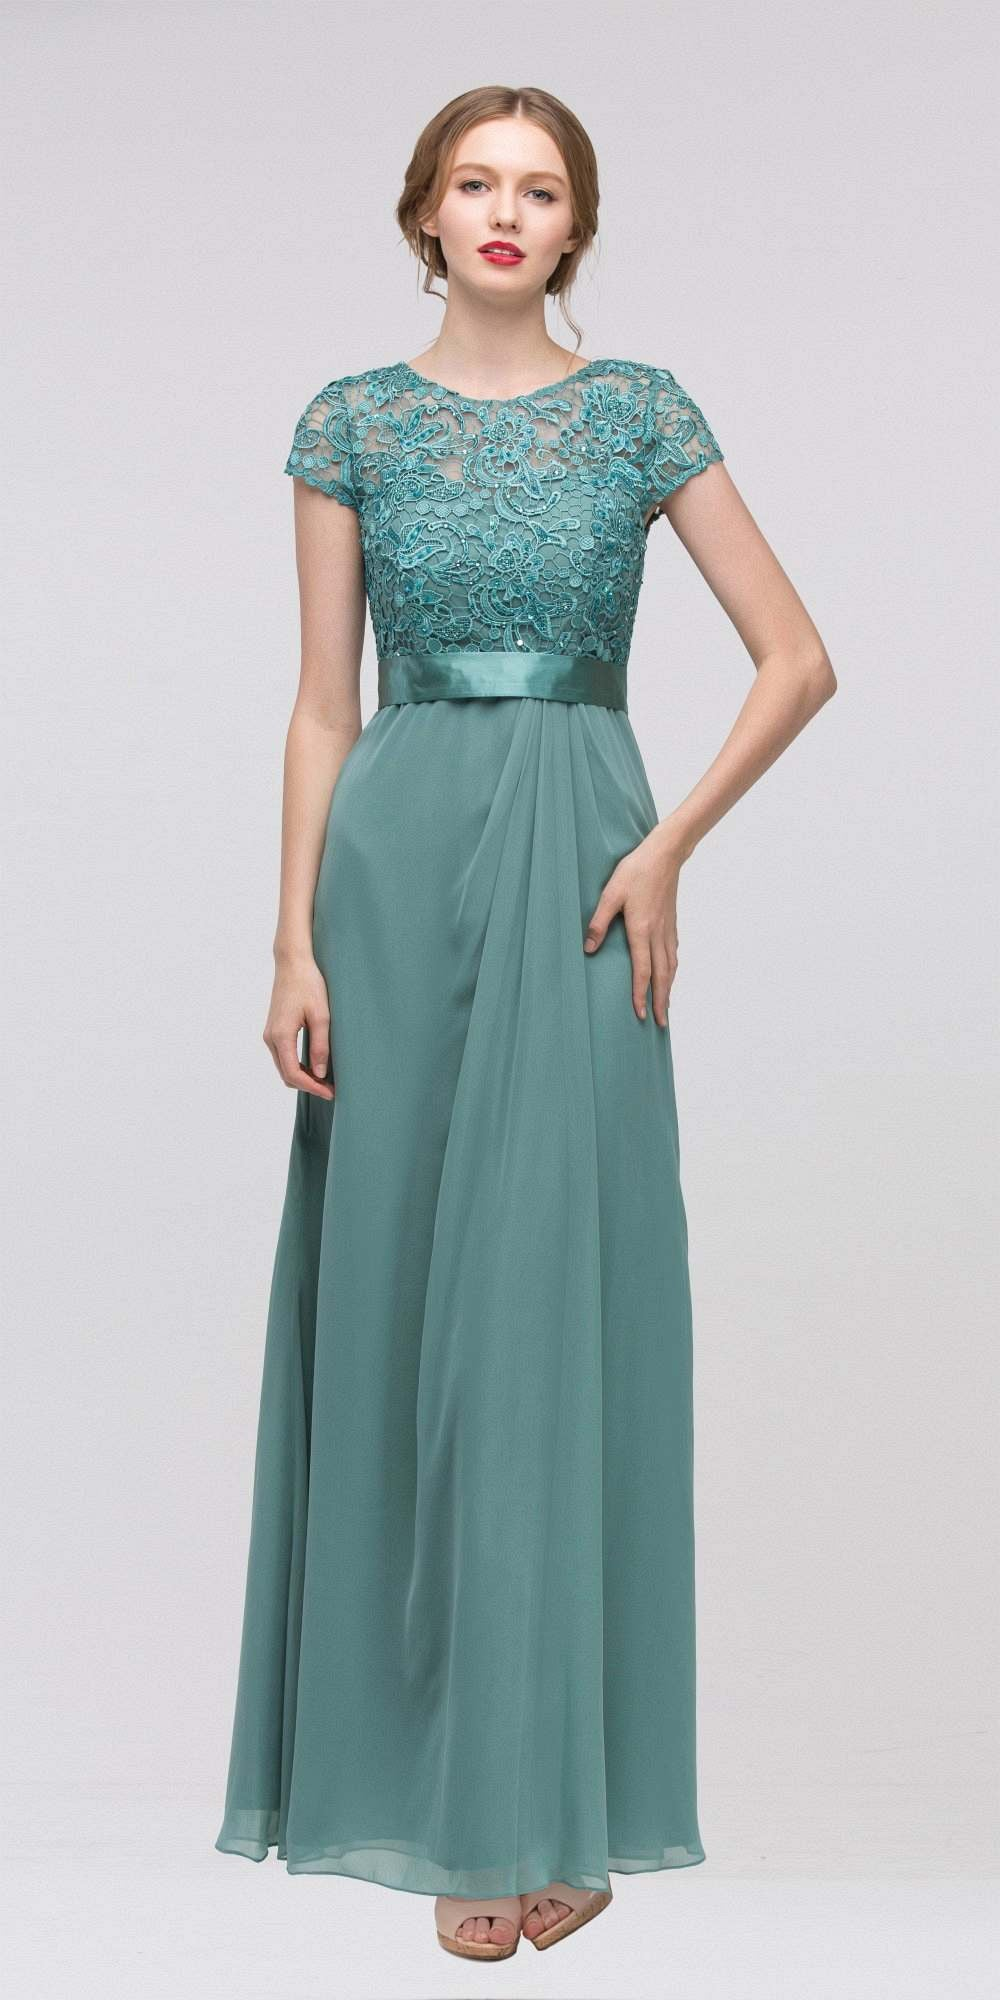 Plus Size Lace Top Evening Gown Jade Short Sleeves Chiffon Skirt ...